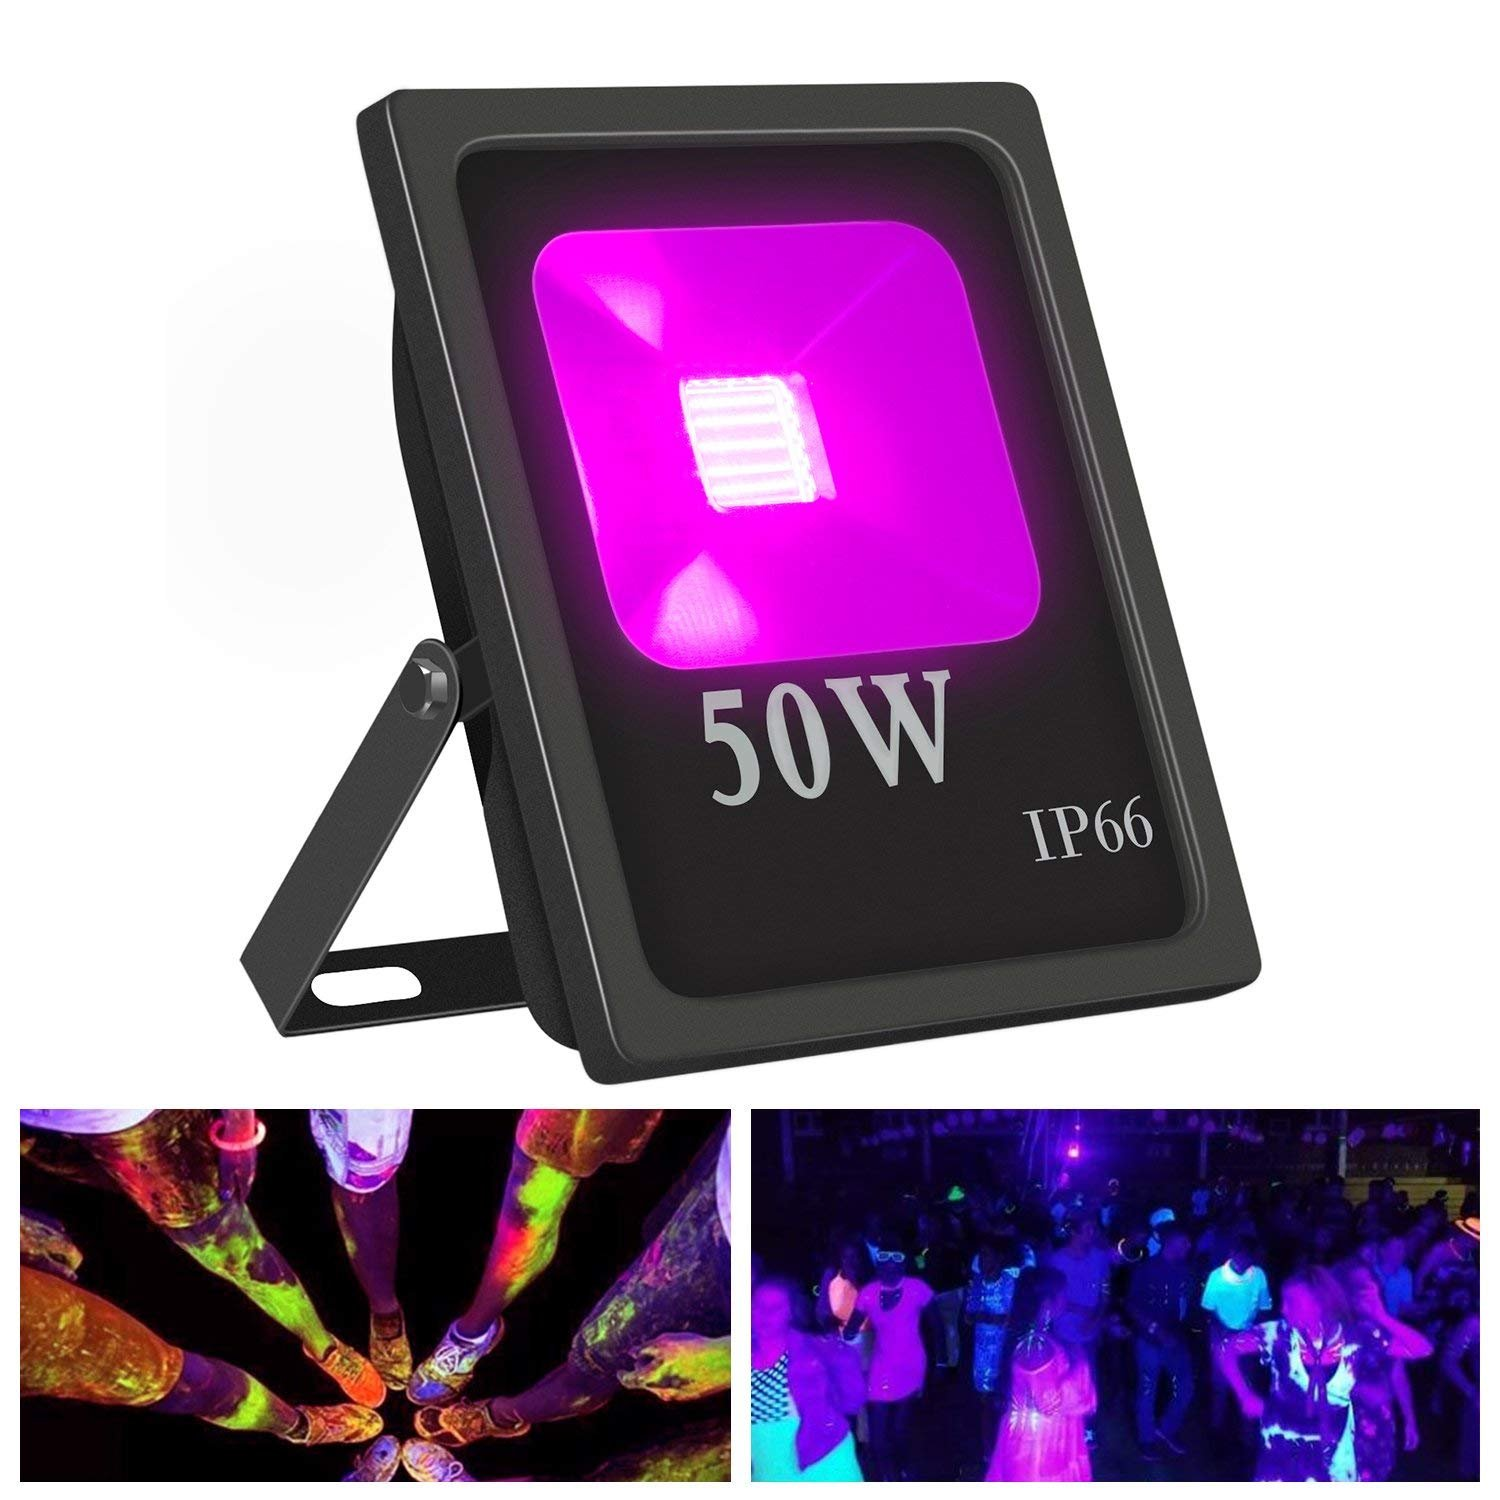 Exulight UV LED Flood Light, 20W High Power UV Ultraviolet Black Lights 85V-265V AC IP66 Waterproof for Parties,Curing, Glue, Blacklight, Fishing, Aquarium with US Plug (20W)